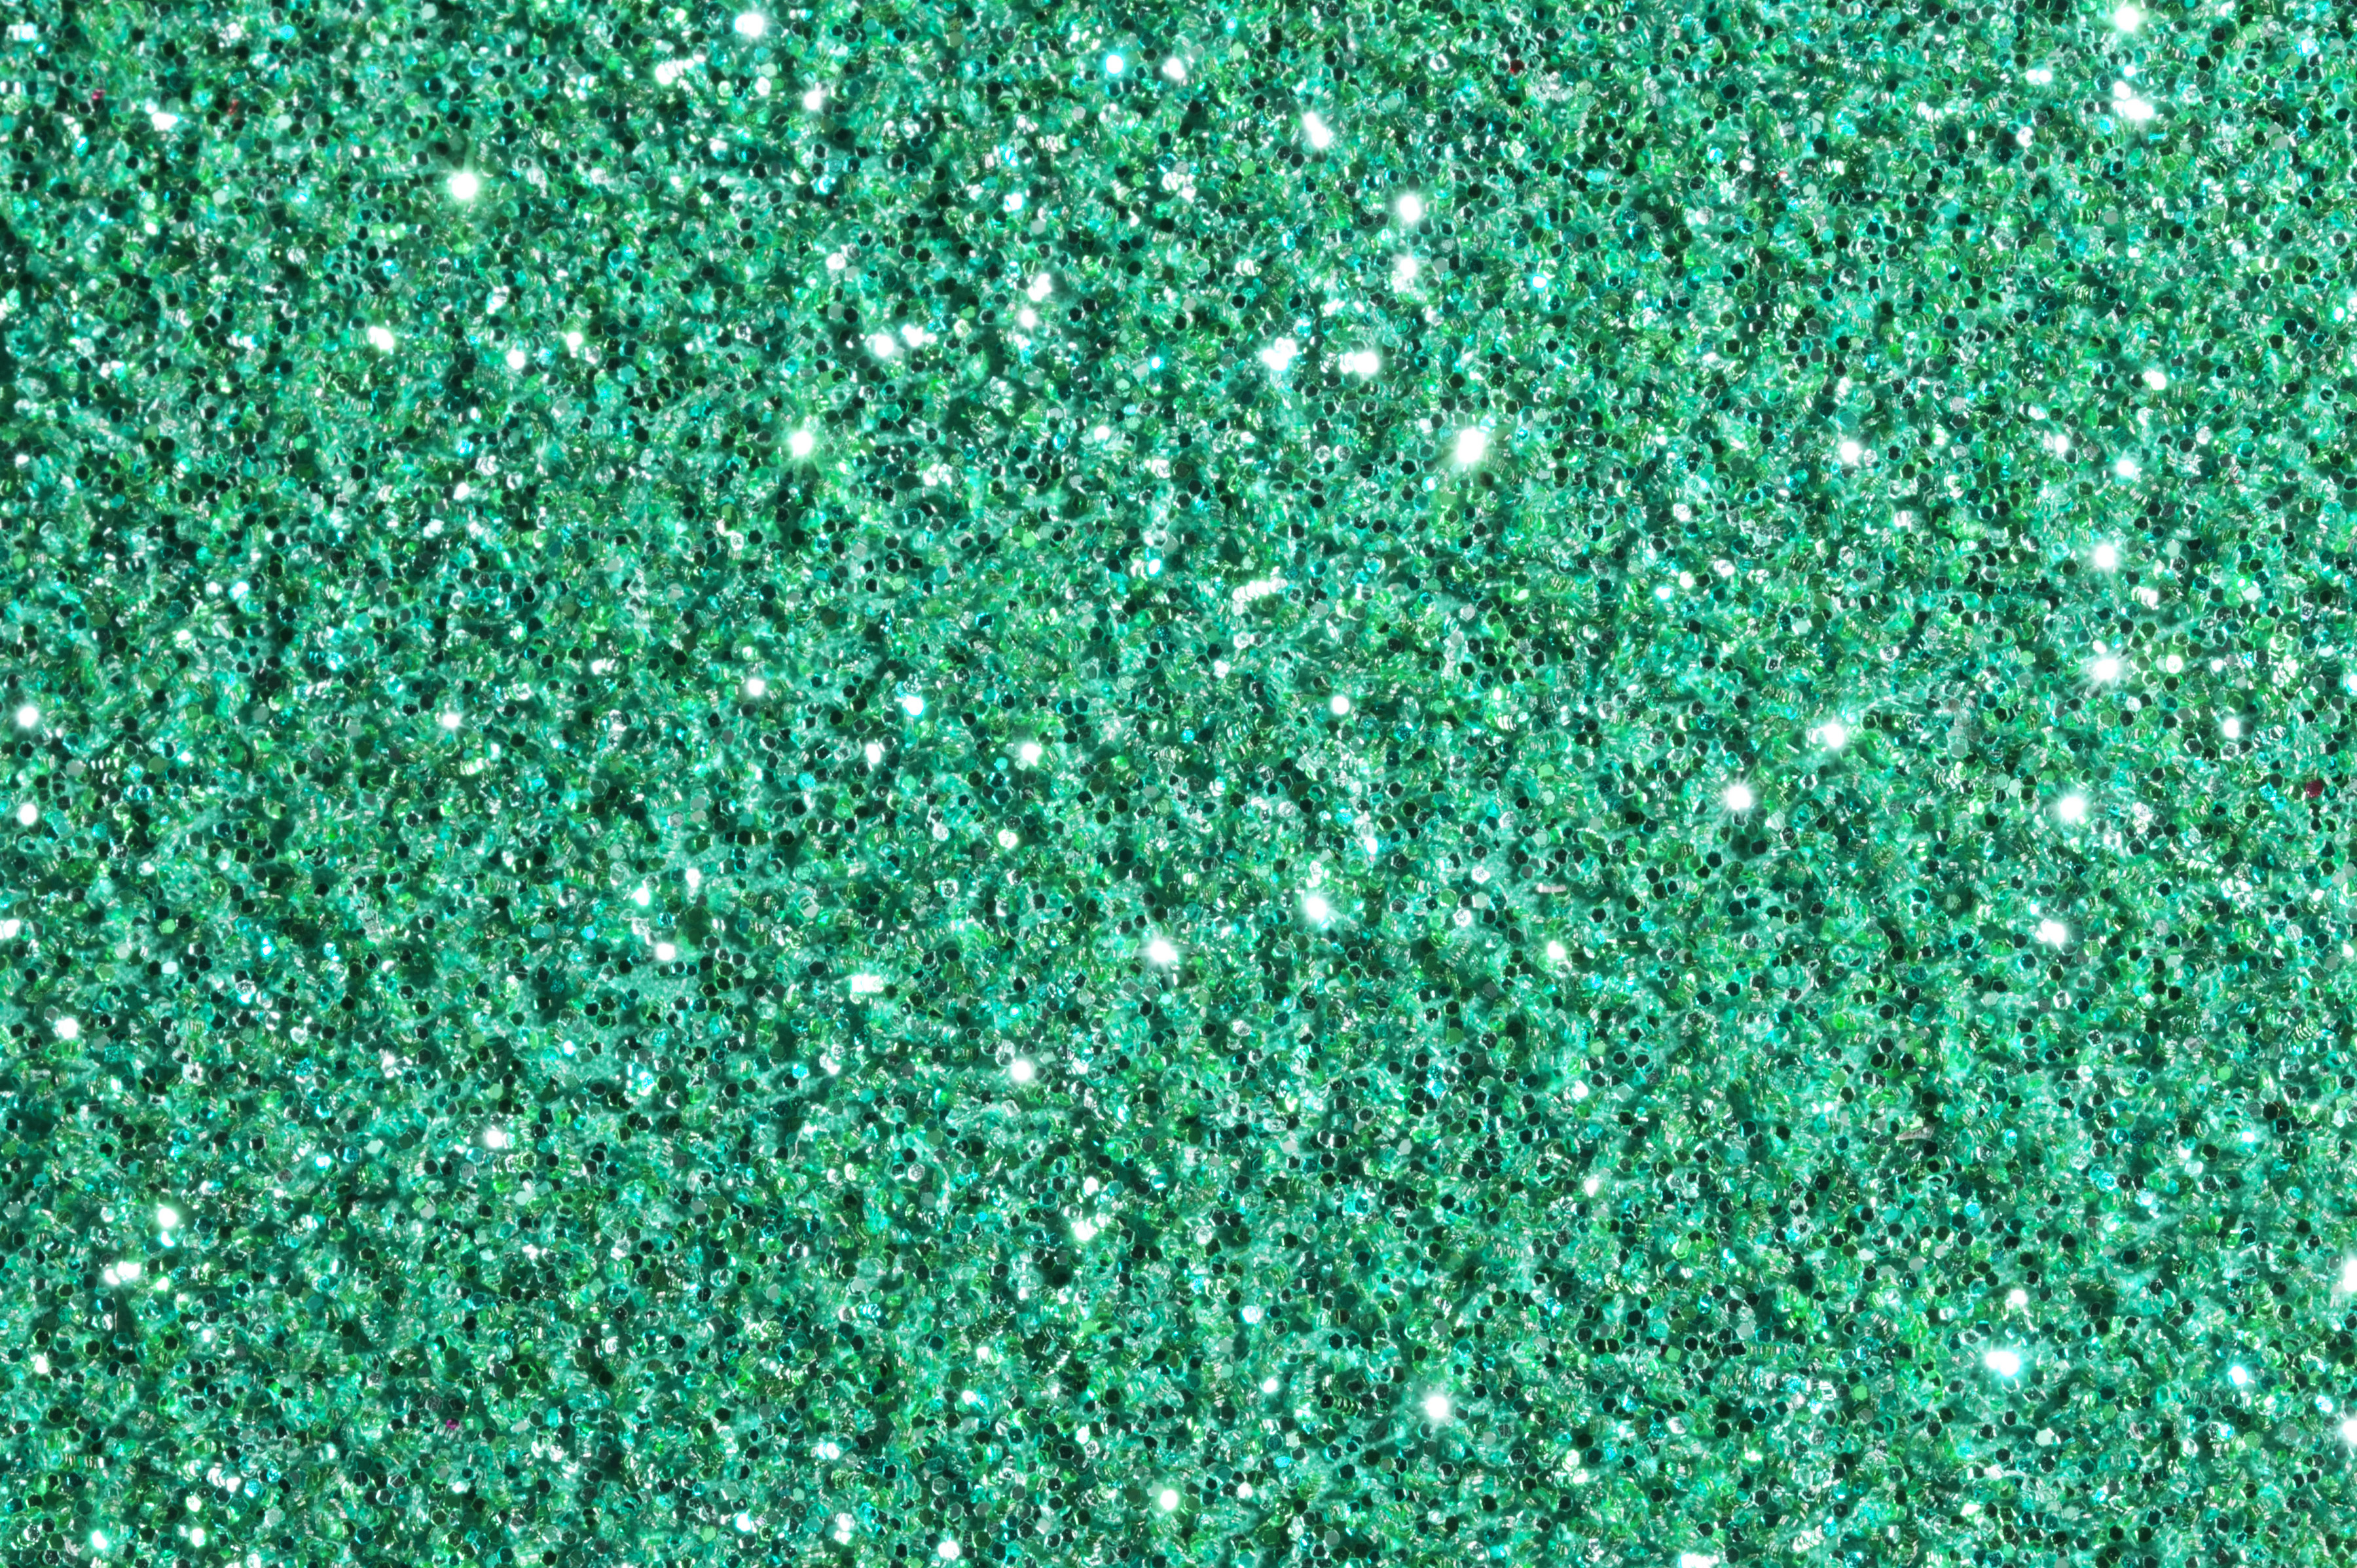 Sparkling Emerald Green Glitter Background backgrounds and 3600x2395